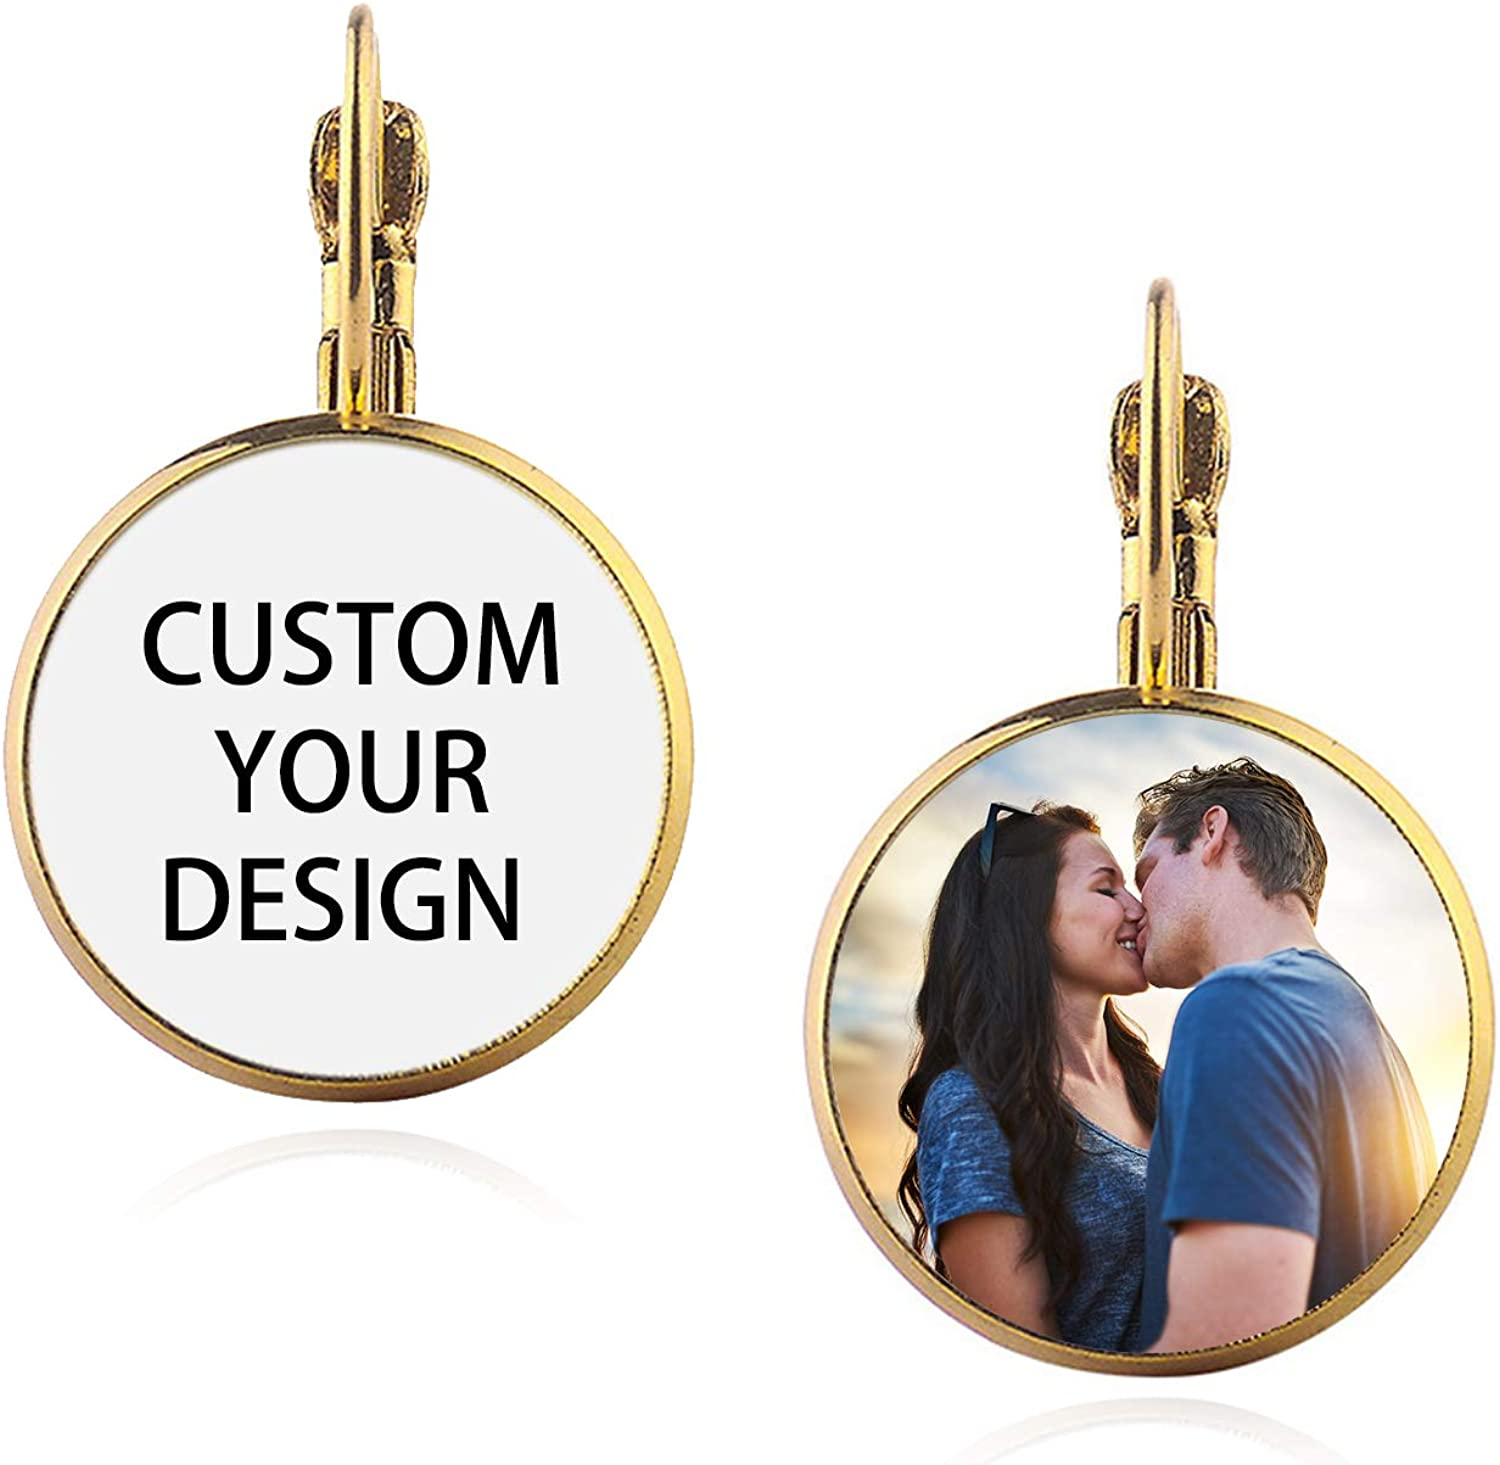 Custom Photo Clip-On Earrings for Women, Personalized Round Earrings with Picture/Text, Fashion Jewelry Gift for Wedding Birthday Anniversary